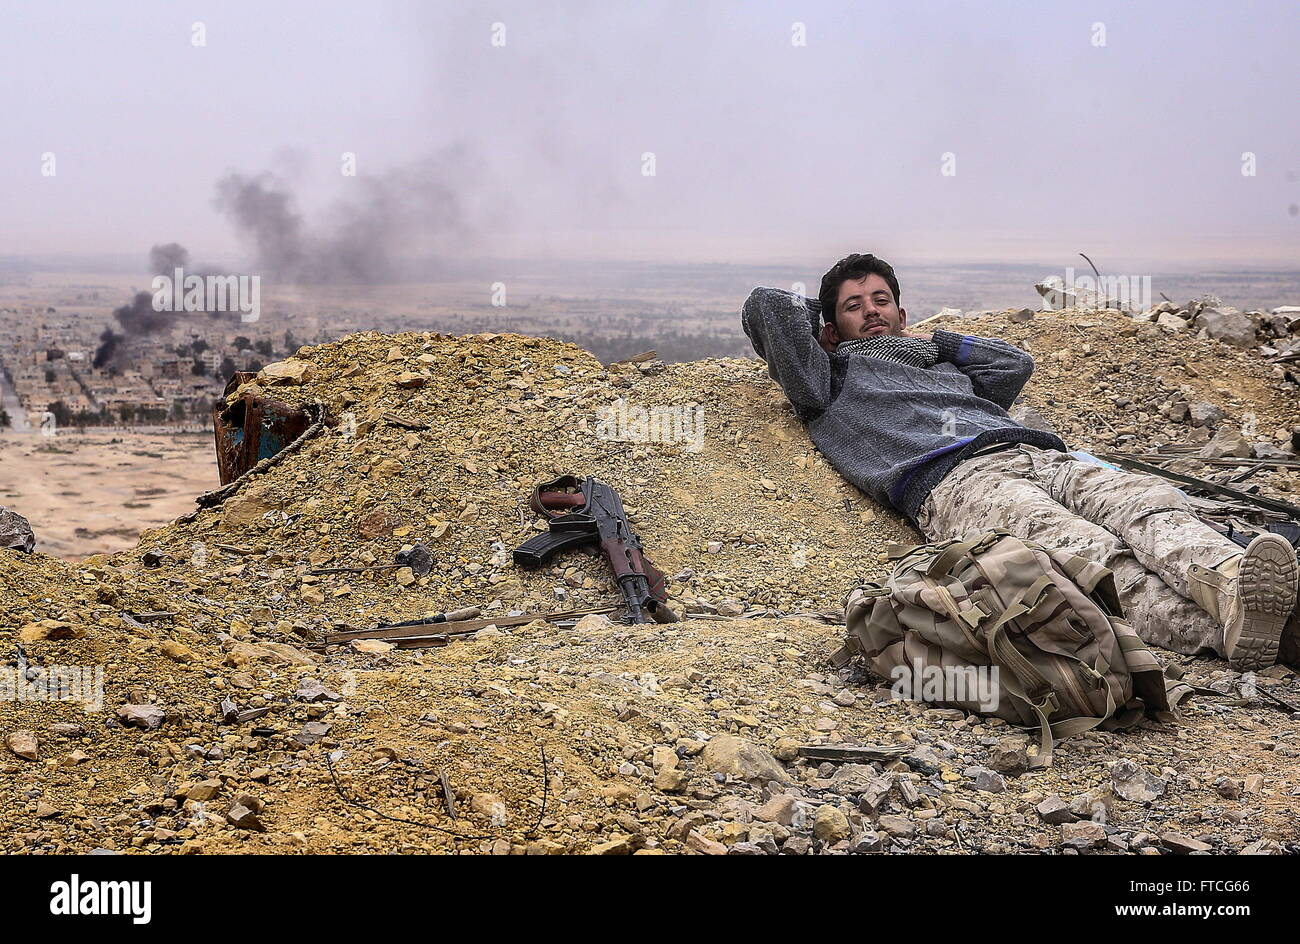 Palmyria, Syria. 26th Mar, 2016. A Syrian government army soldier on top of Fakhr al-Din al-Maani Citadel in Palmyra, - Stock Image